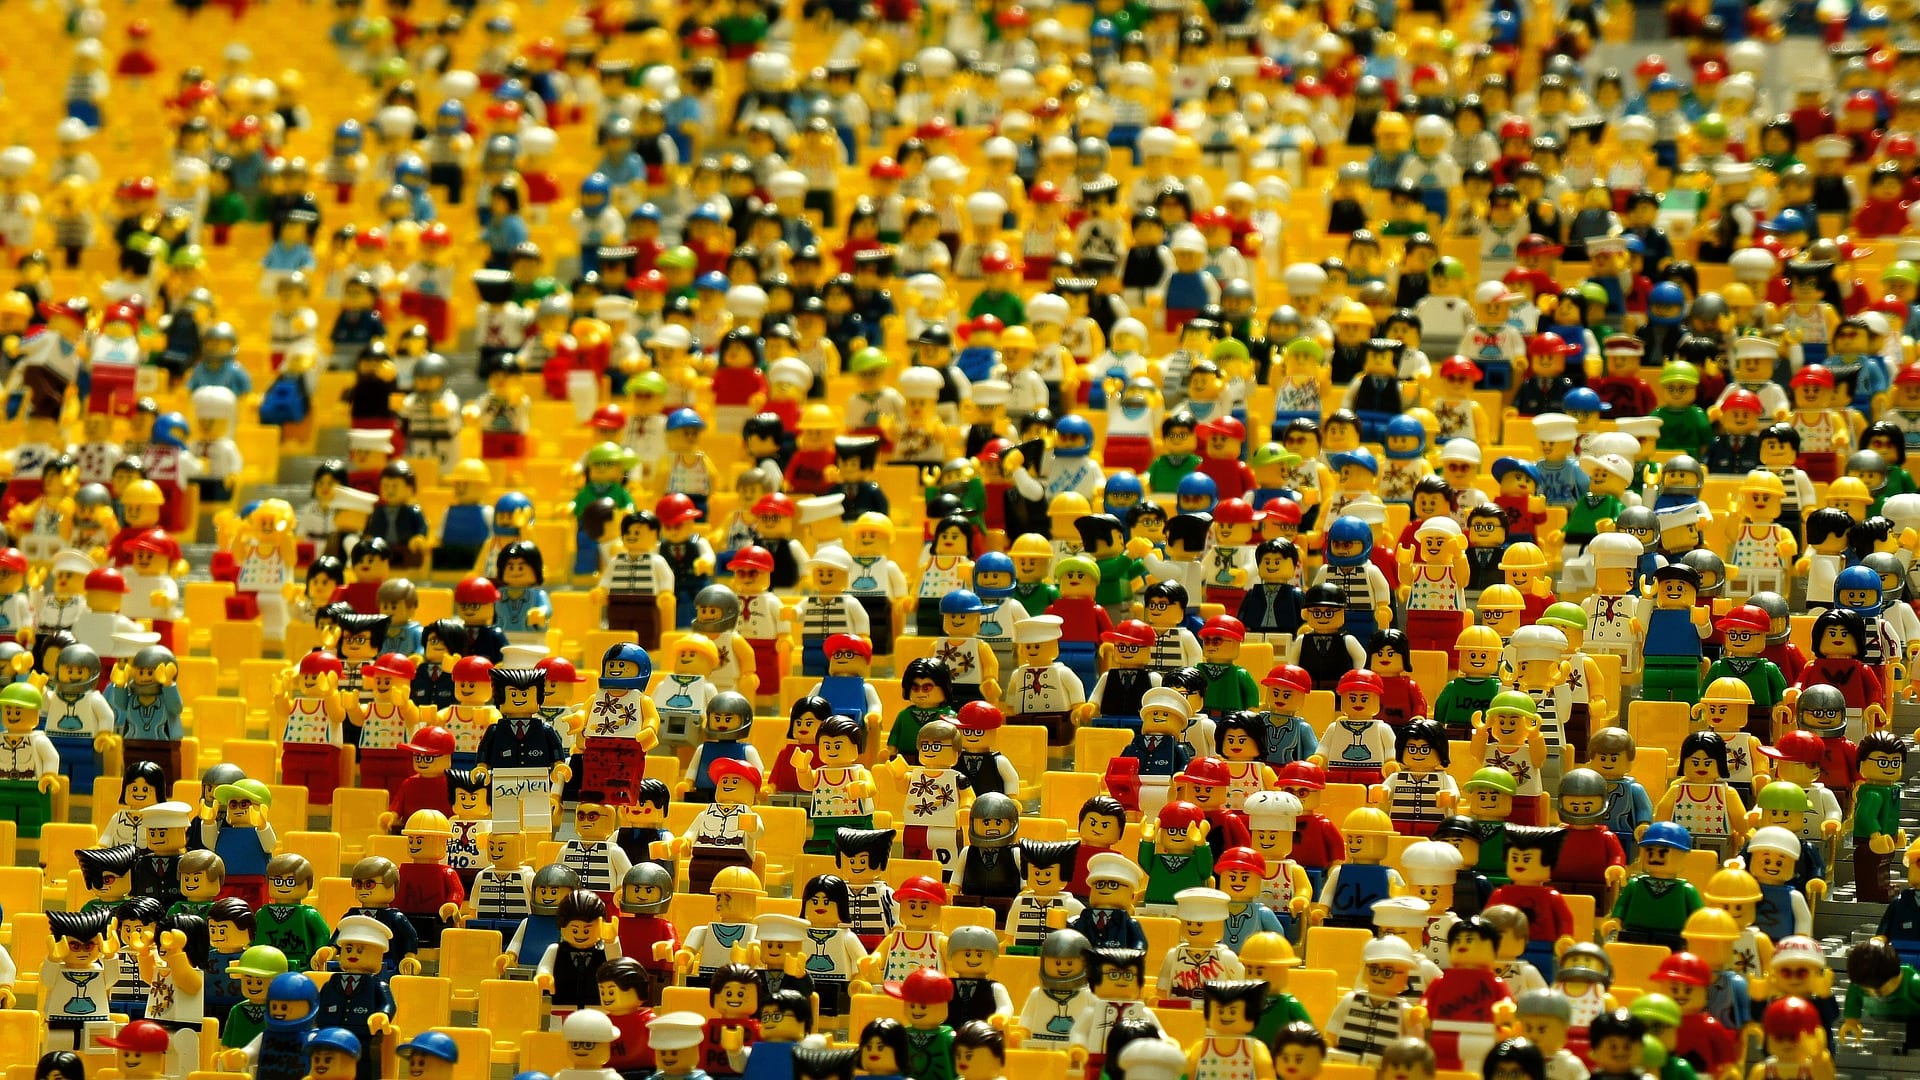 A crowd of mini-figures